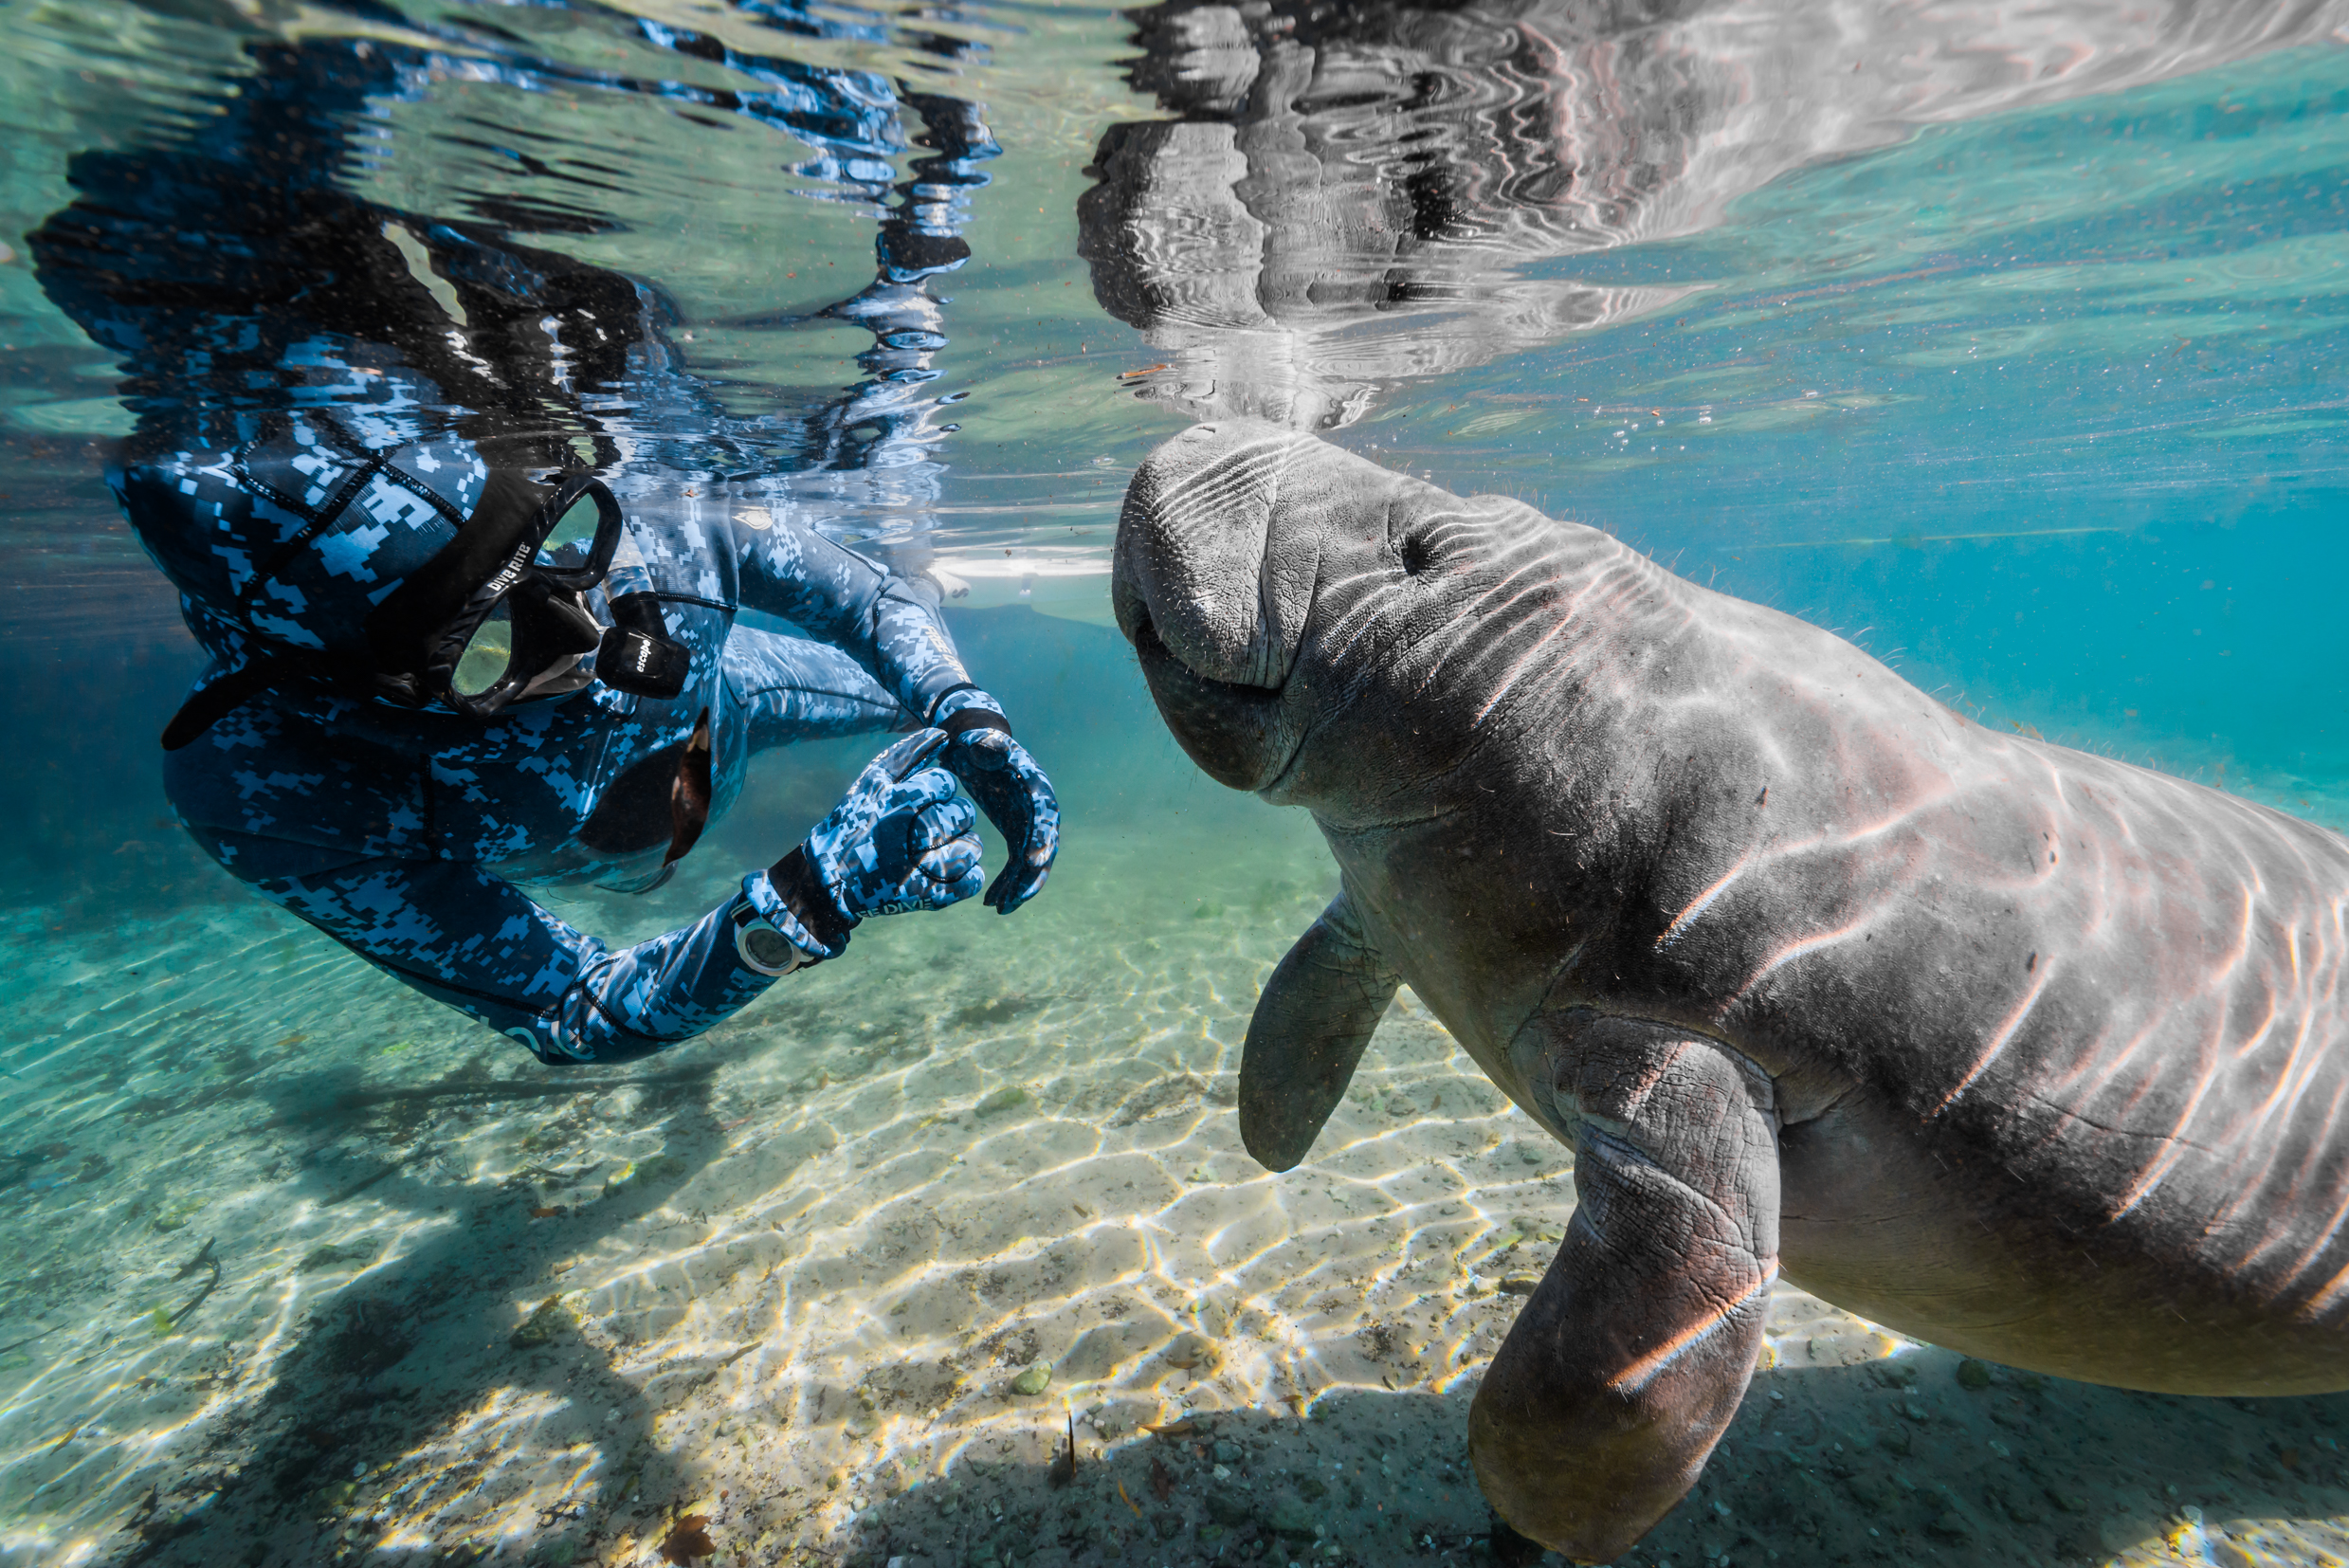 Manatee in Florida, USA, by Jennifer Idol